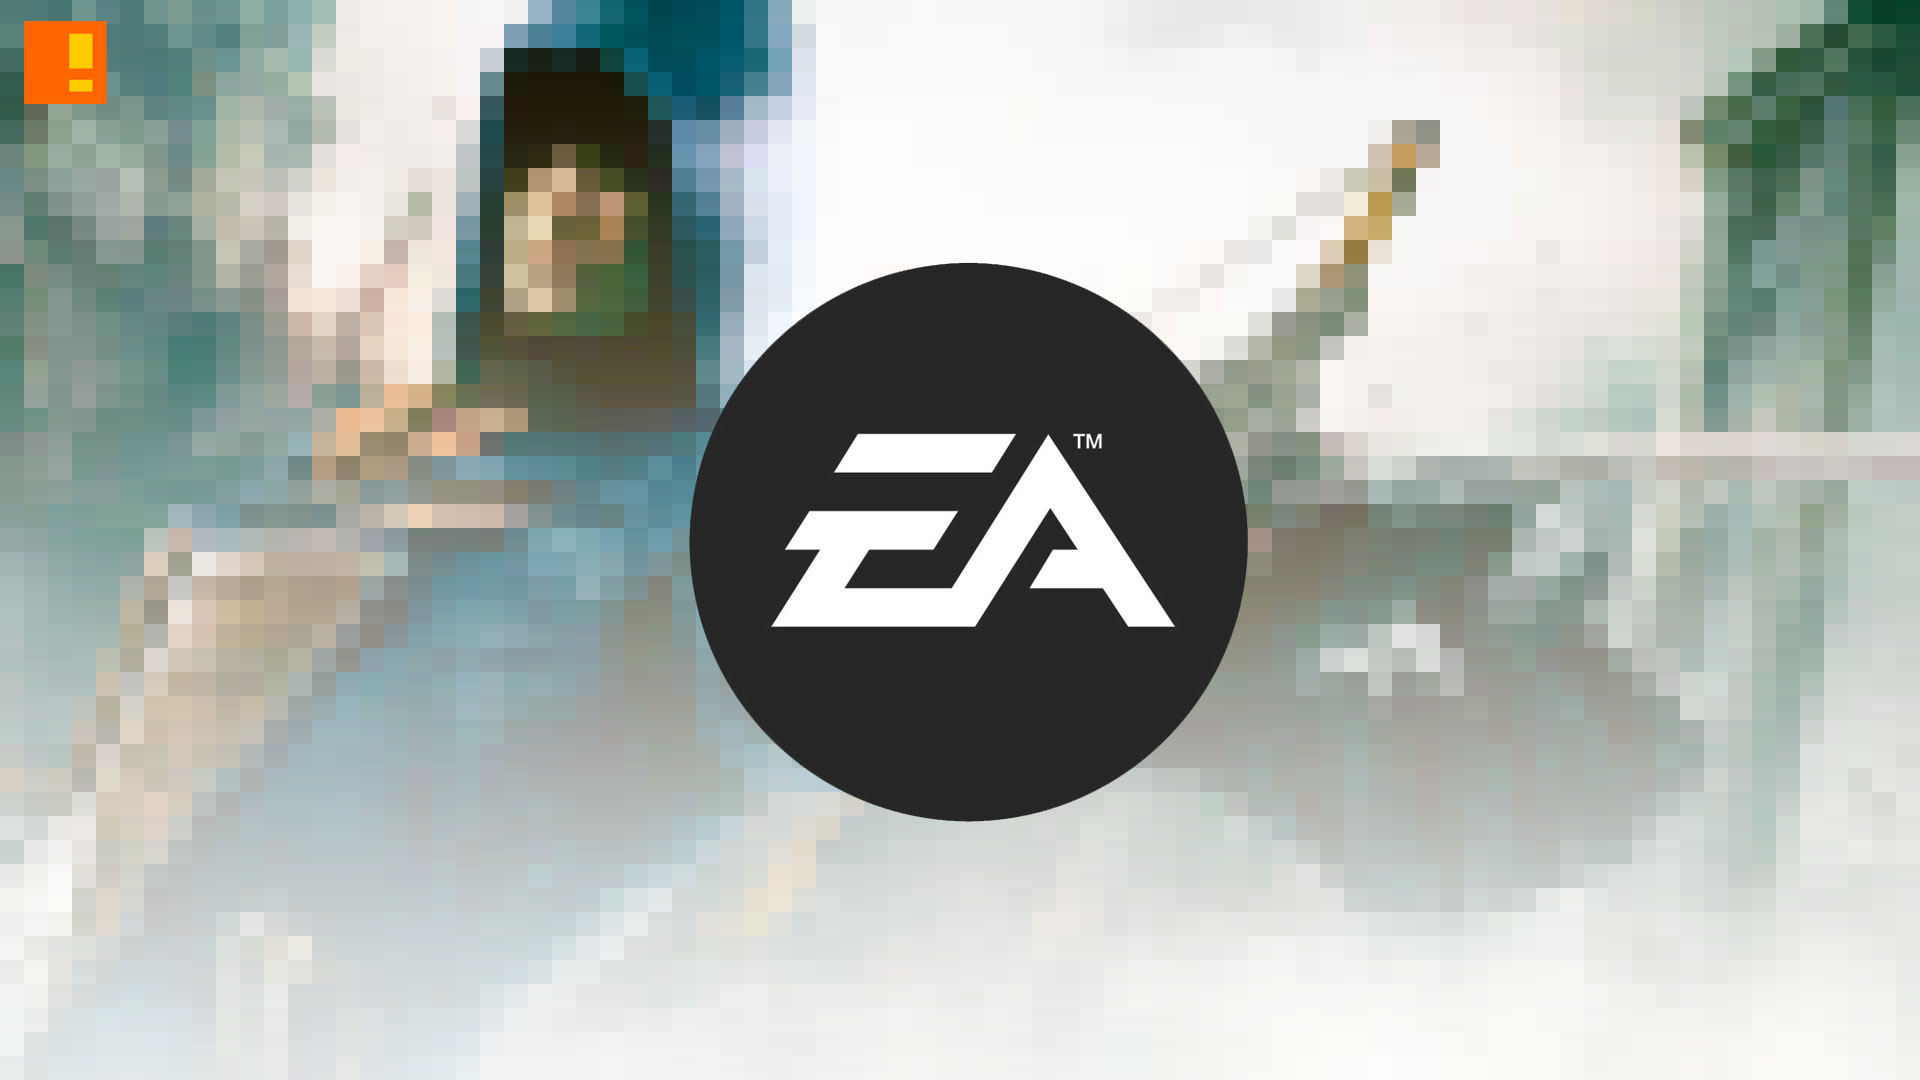 ea, electronic arts, the action pixel, @theactionpixel, entertainment on tap, assassin's creed,